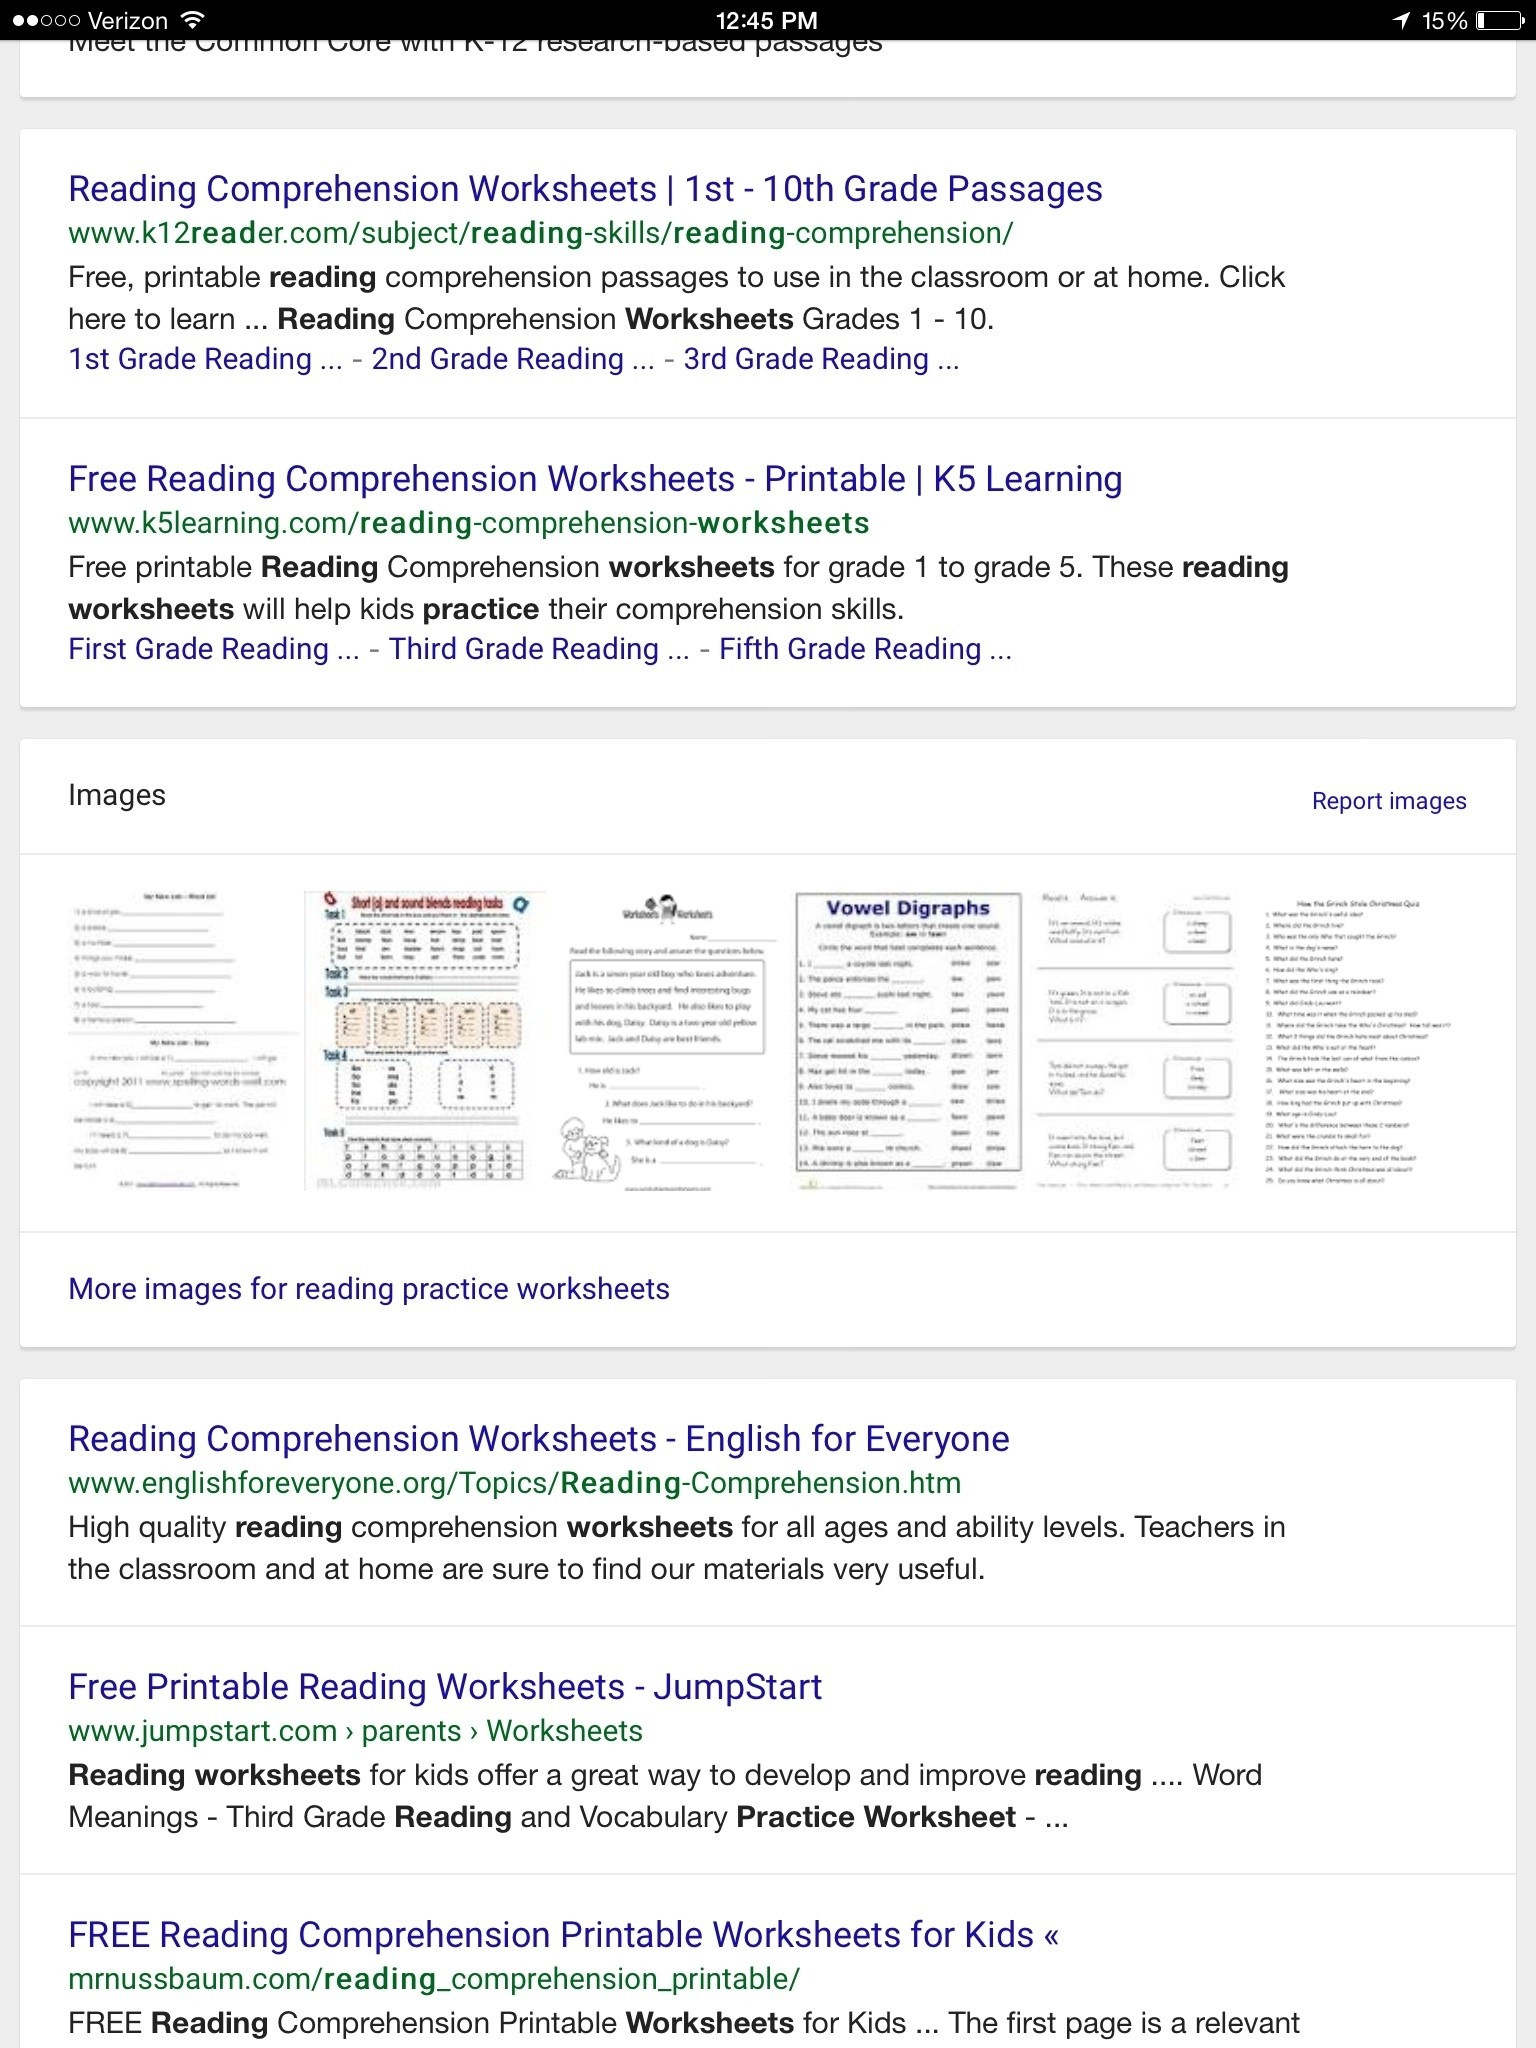 1st Grade Reading Fluency Worksheets Math Worksheet Readingssages 2nd Grade Prehension